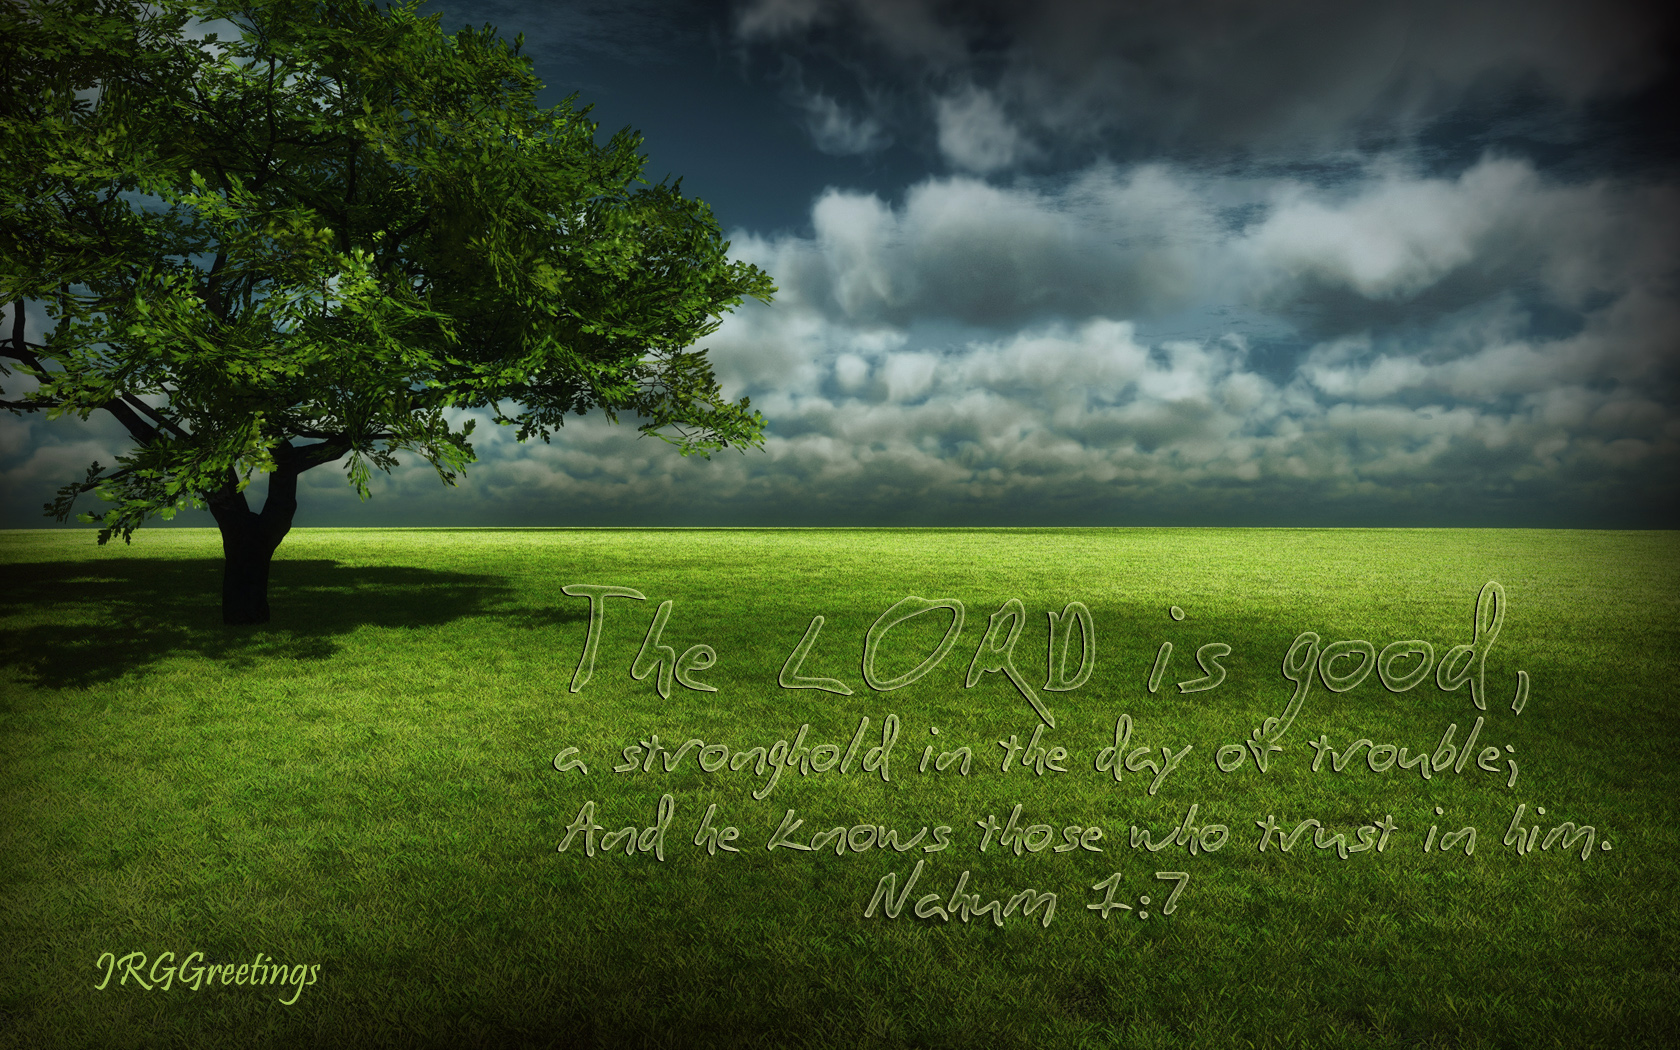 Christian Desktop Wallpaper Download images 1680x1050